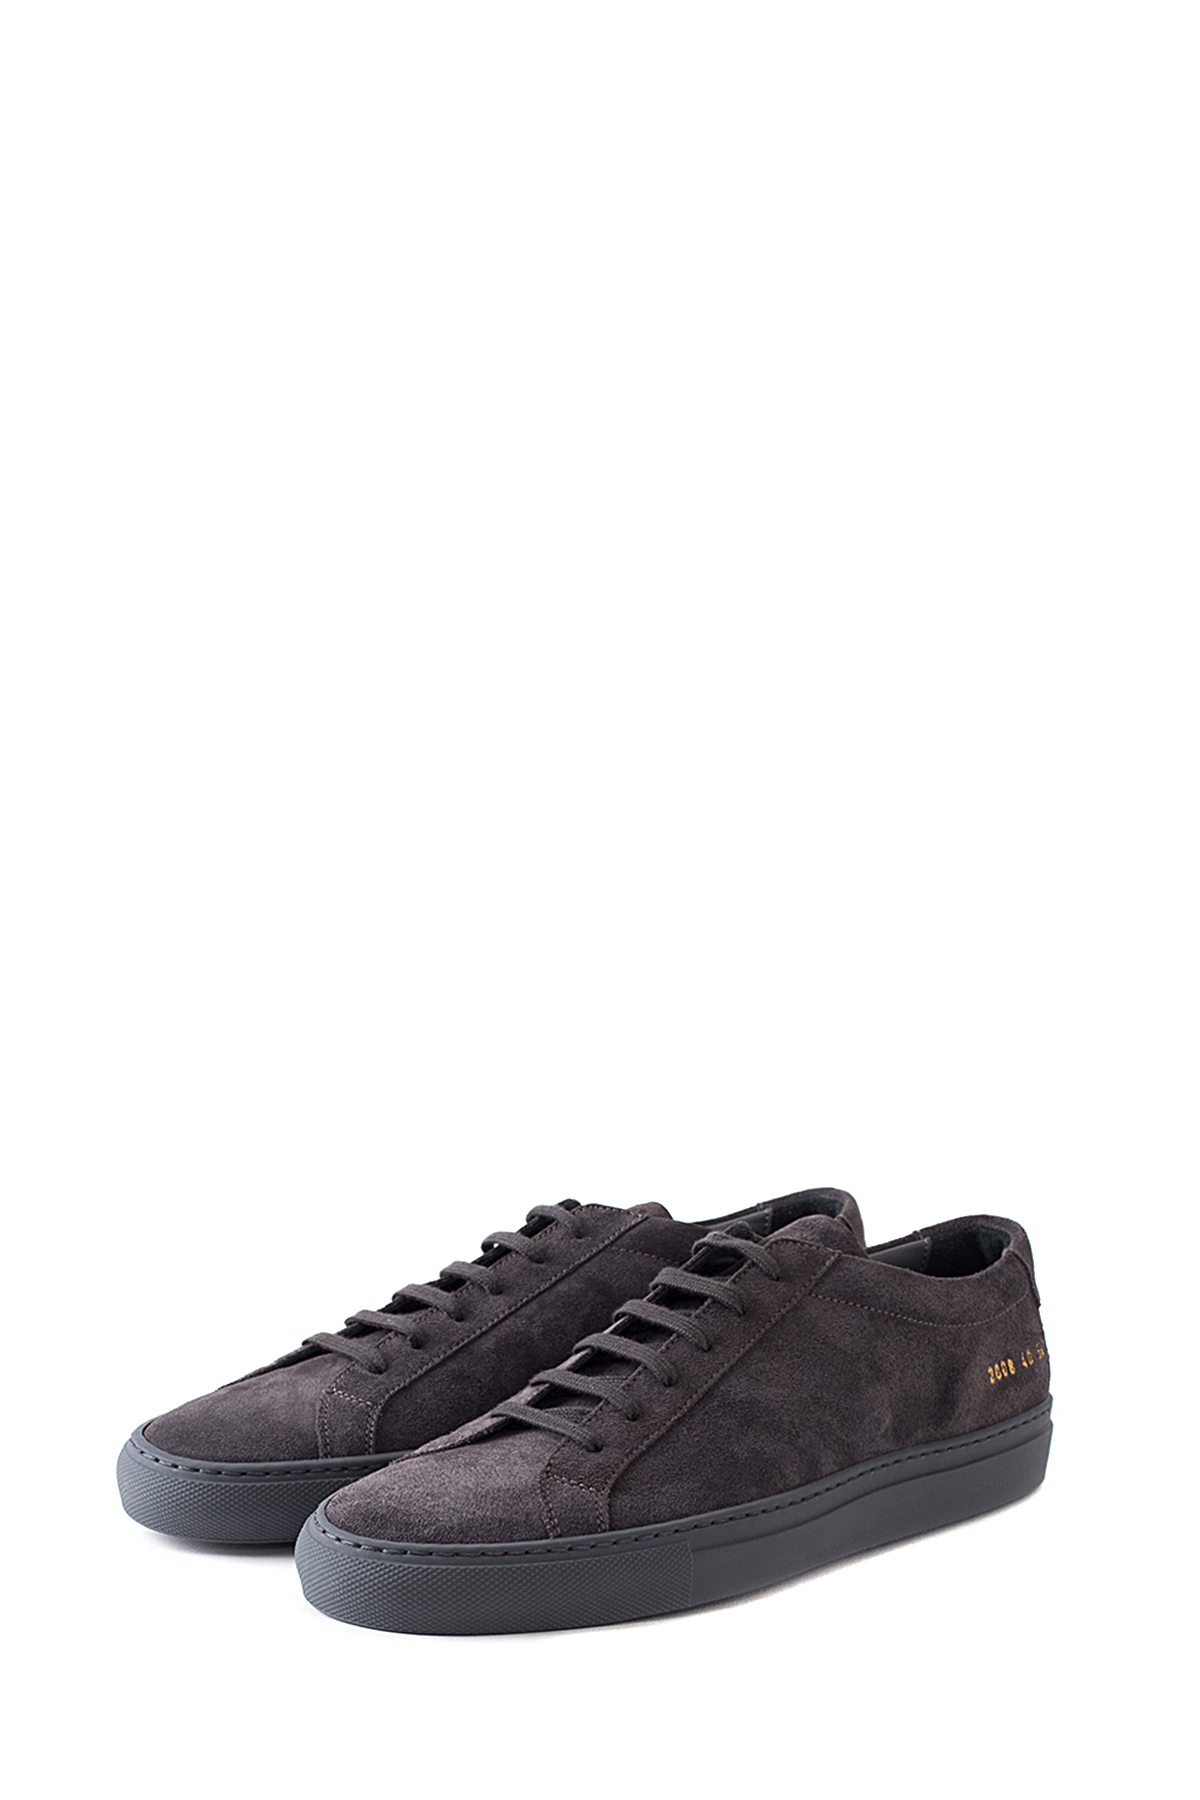 Common Projects : Original Achilles Low in Suede (Dark Grey)